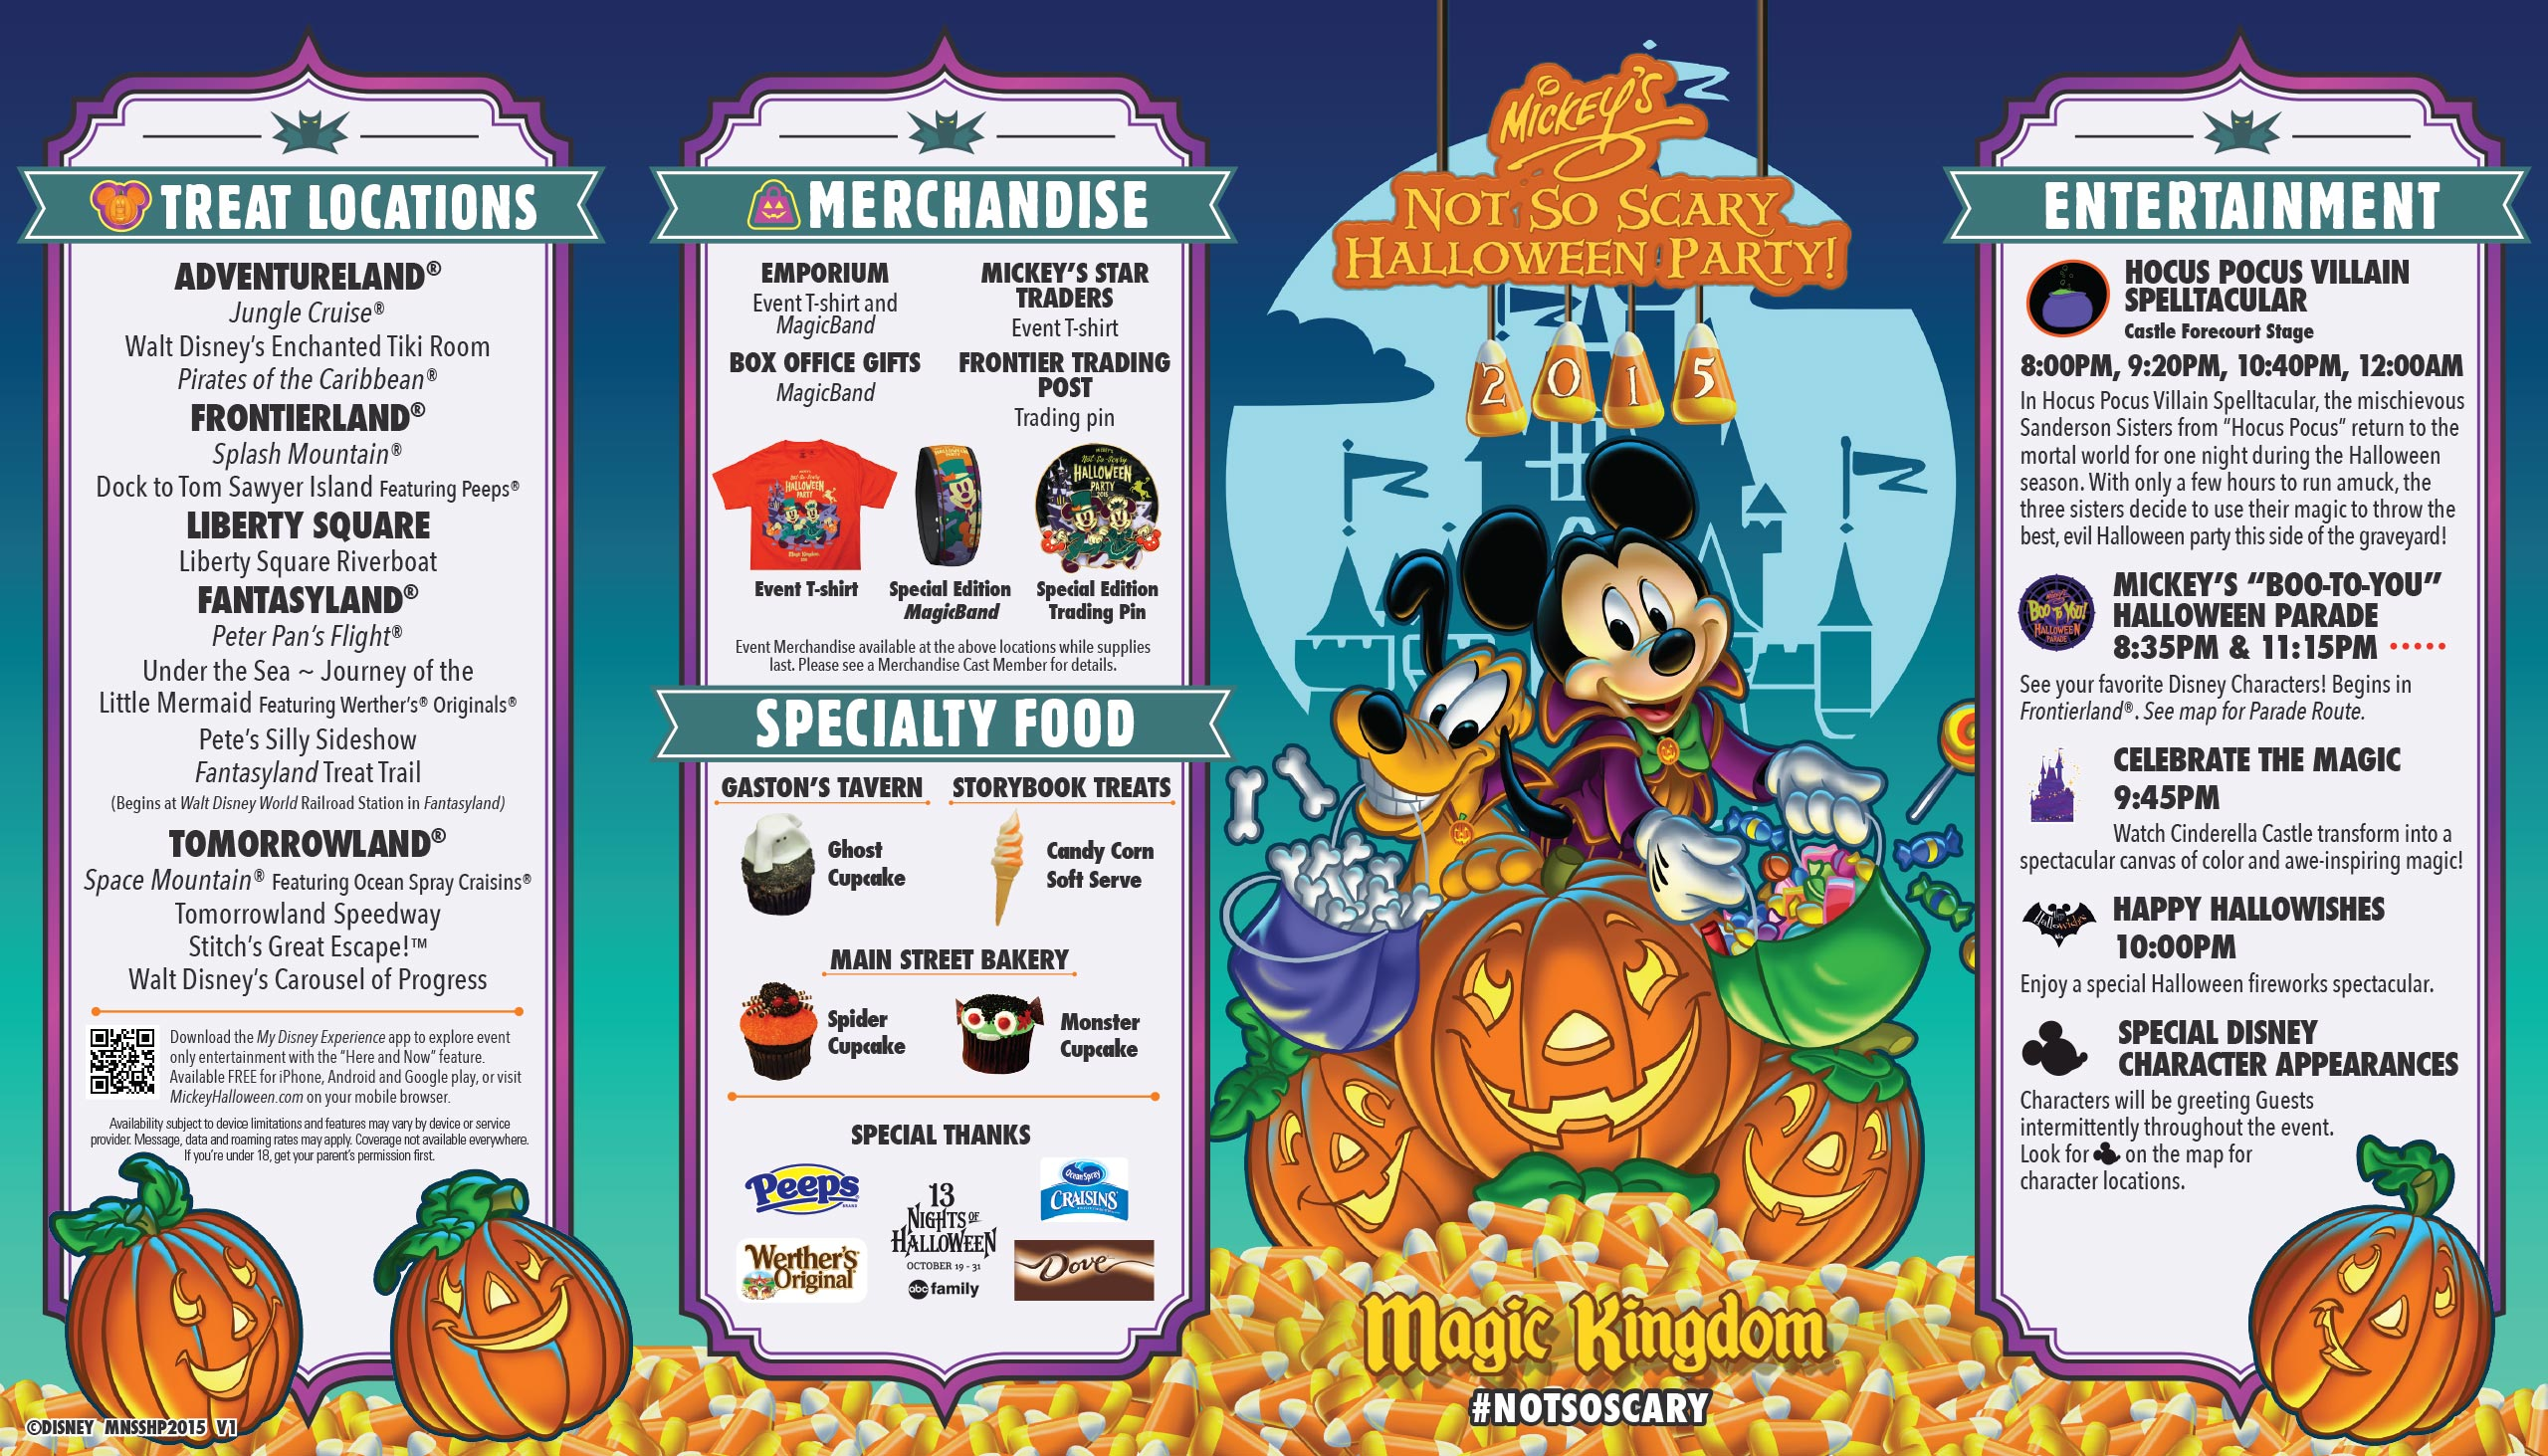 Details on the 2015 Mickey's Not-So-Scary Halloween Party ...